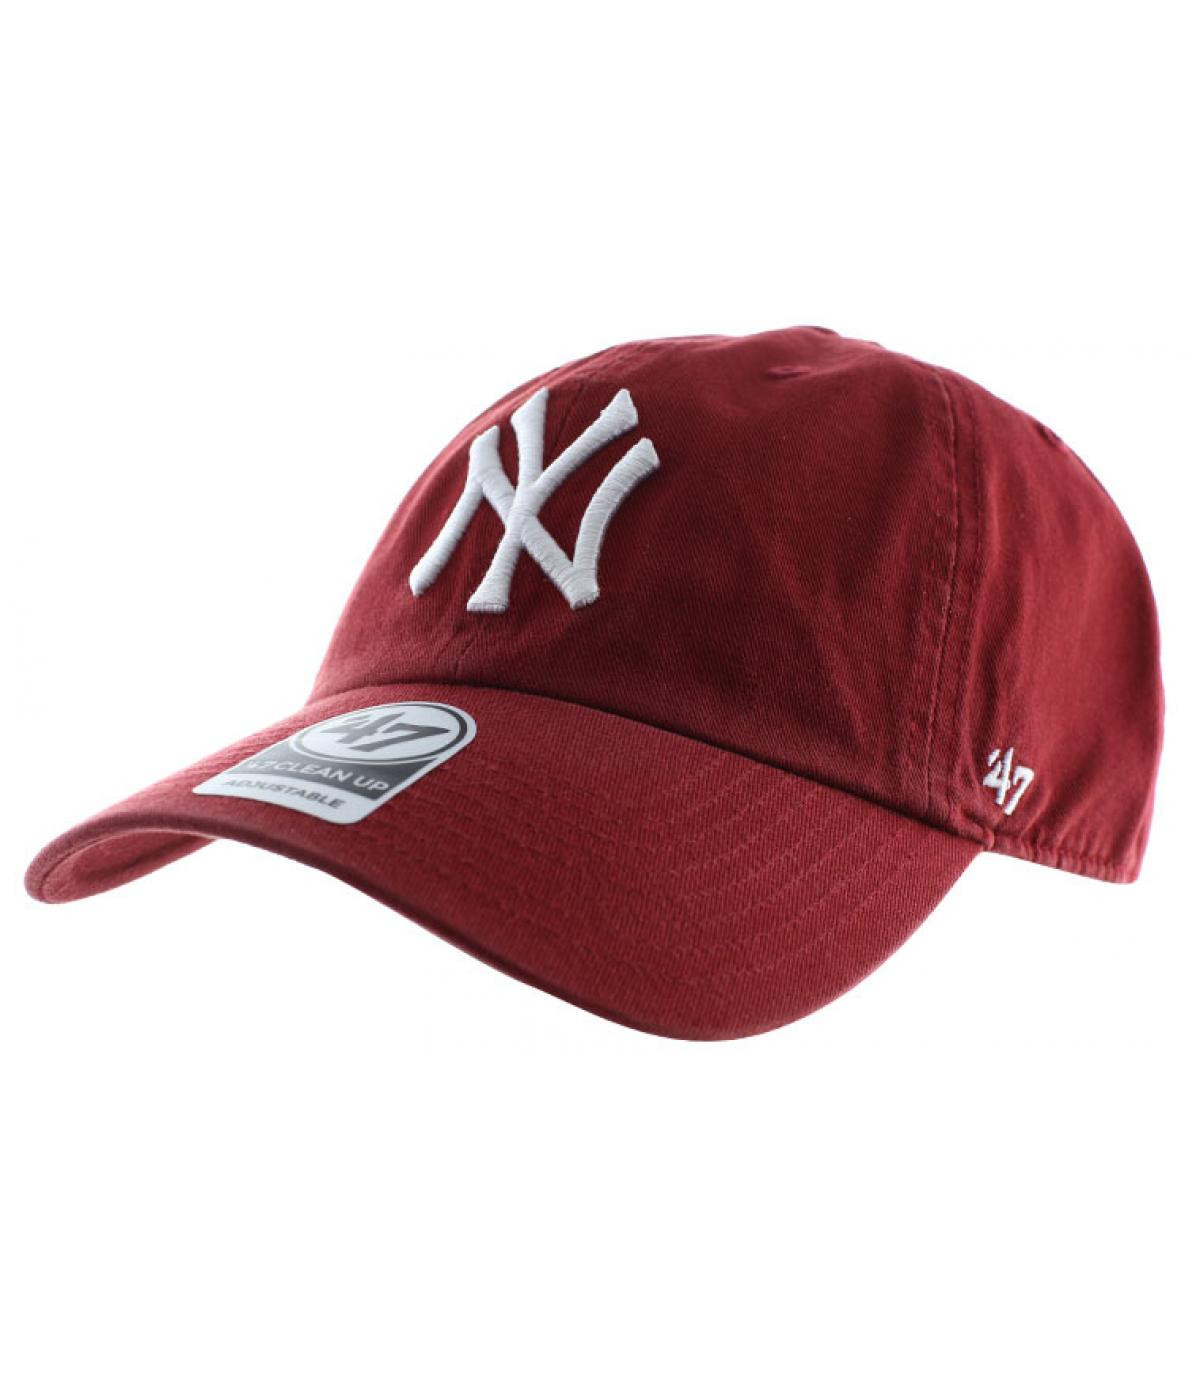 Details Clean Up NY razor red - afbeeling 2